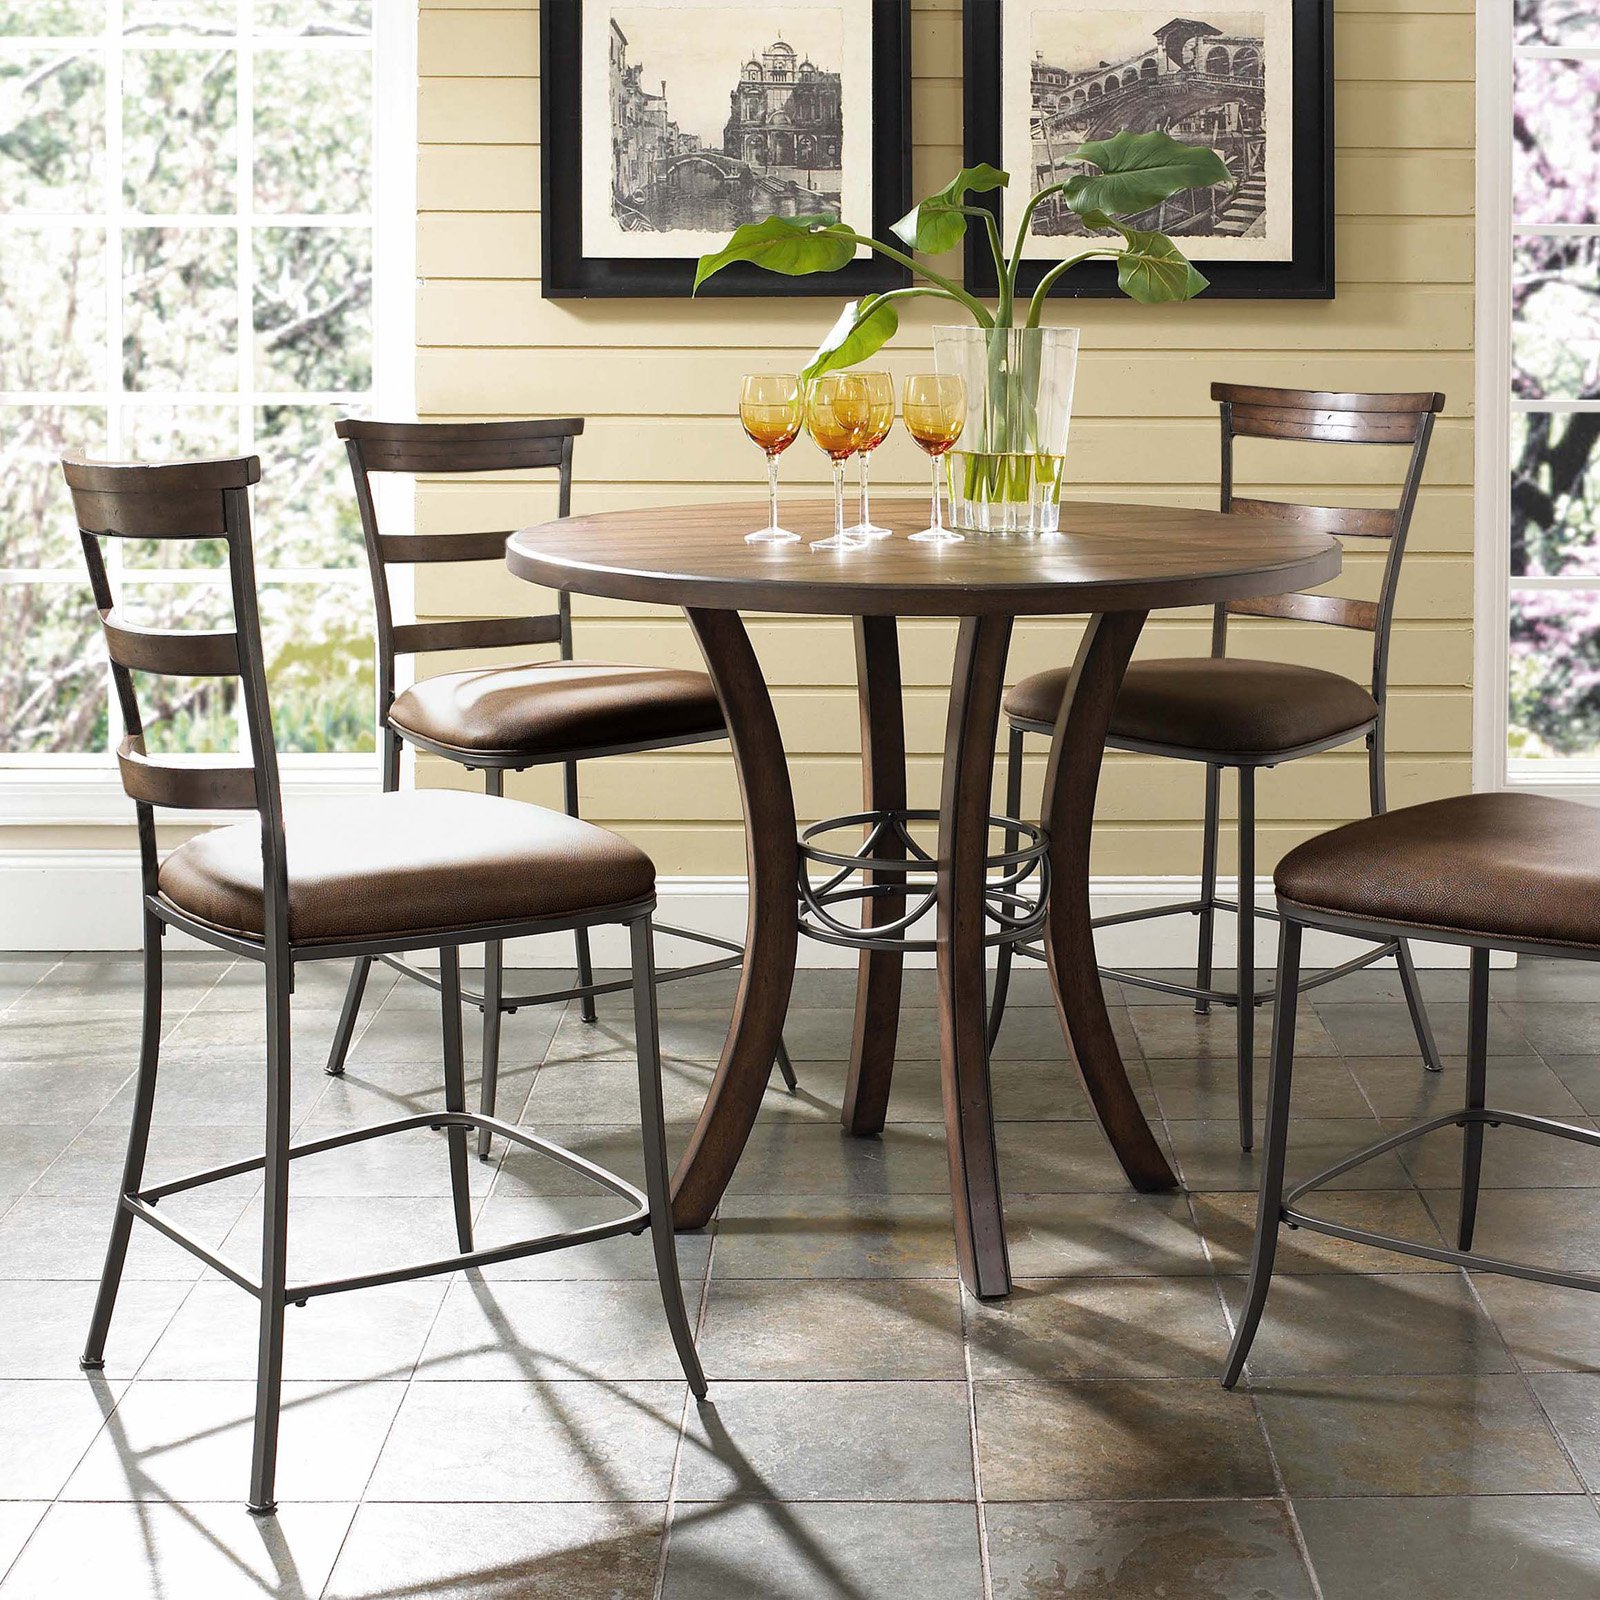 Hillsdale Cameron 5 Piece Counter Height Round Wood Dining Table